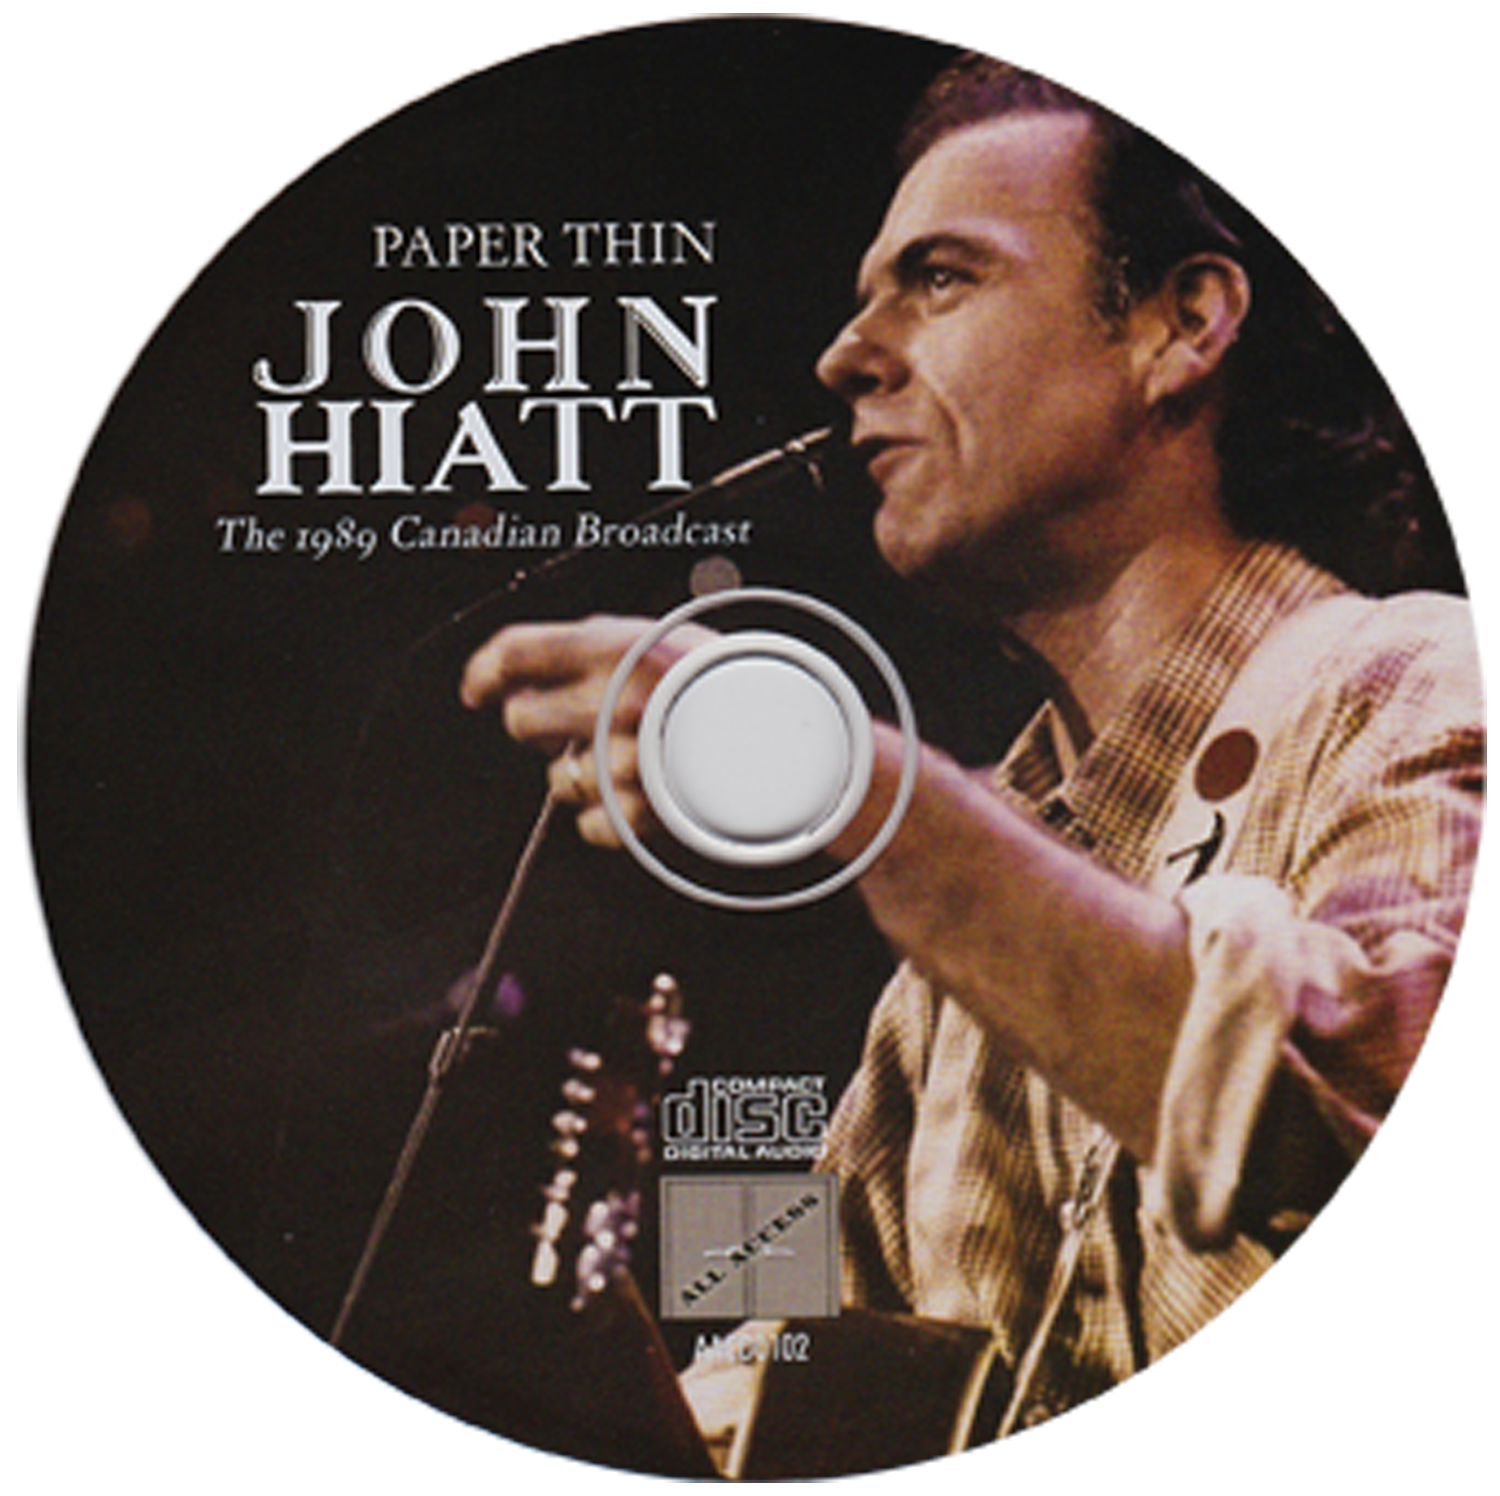 The John Hiatt Archives – Paper thin